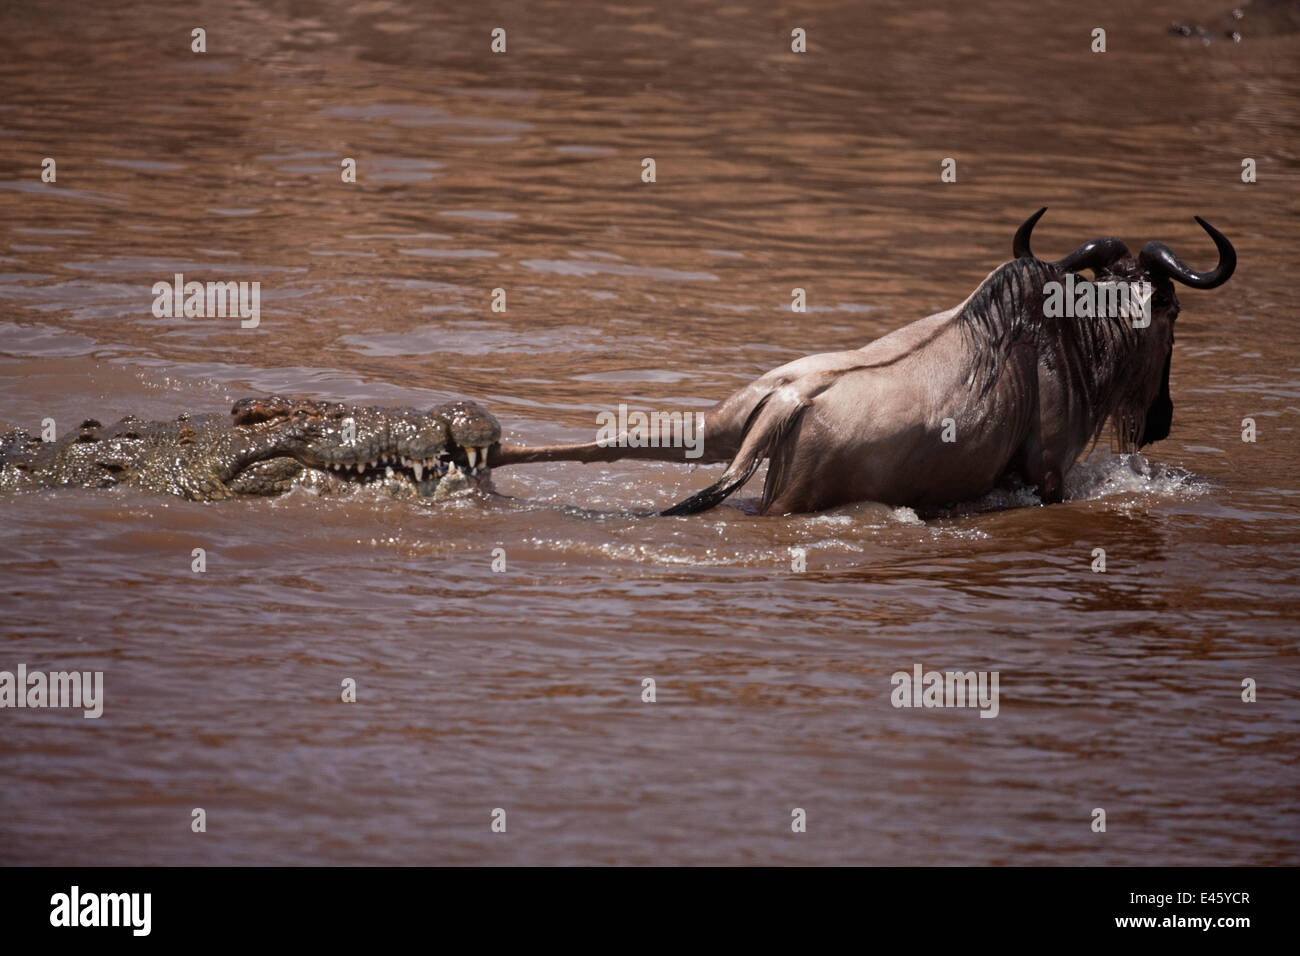 Nile crocodile (Crocodylus niloticus) attacking a Wildebeest (Connochaetes taurinus) as it crosses the Mara River. - Stock Image